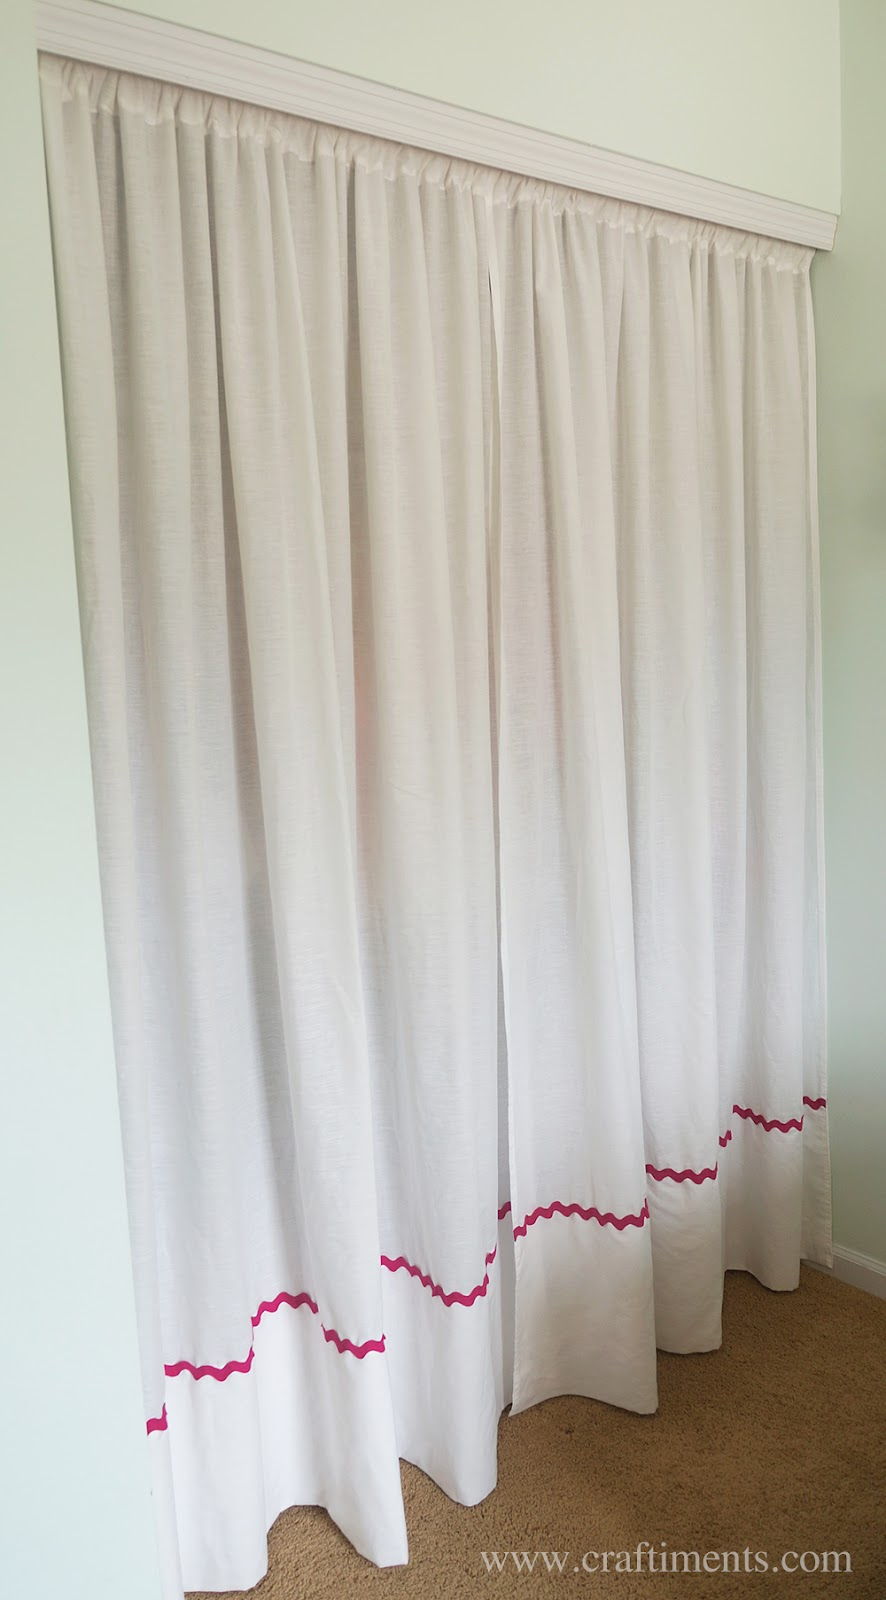 Closet Curtain Craftiments Replacing Closet Doors With Curtains Made From Bedsheets